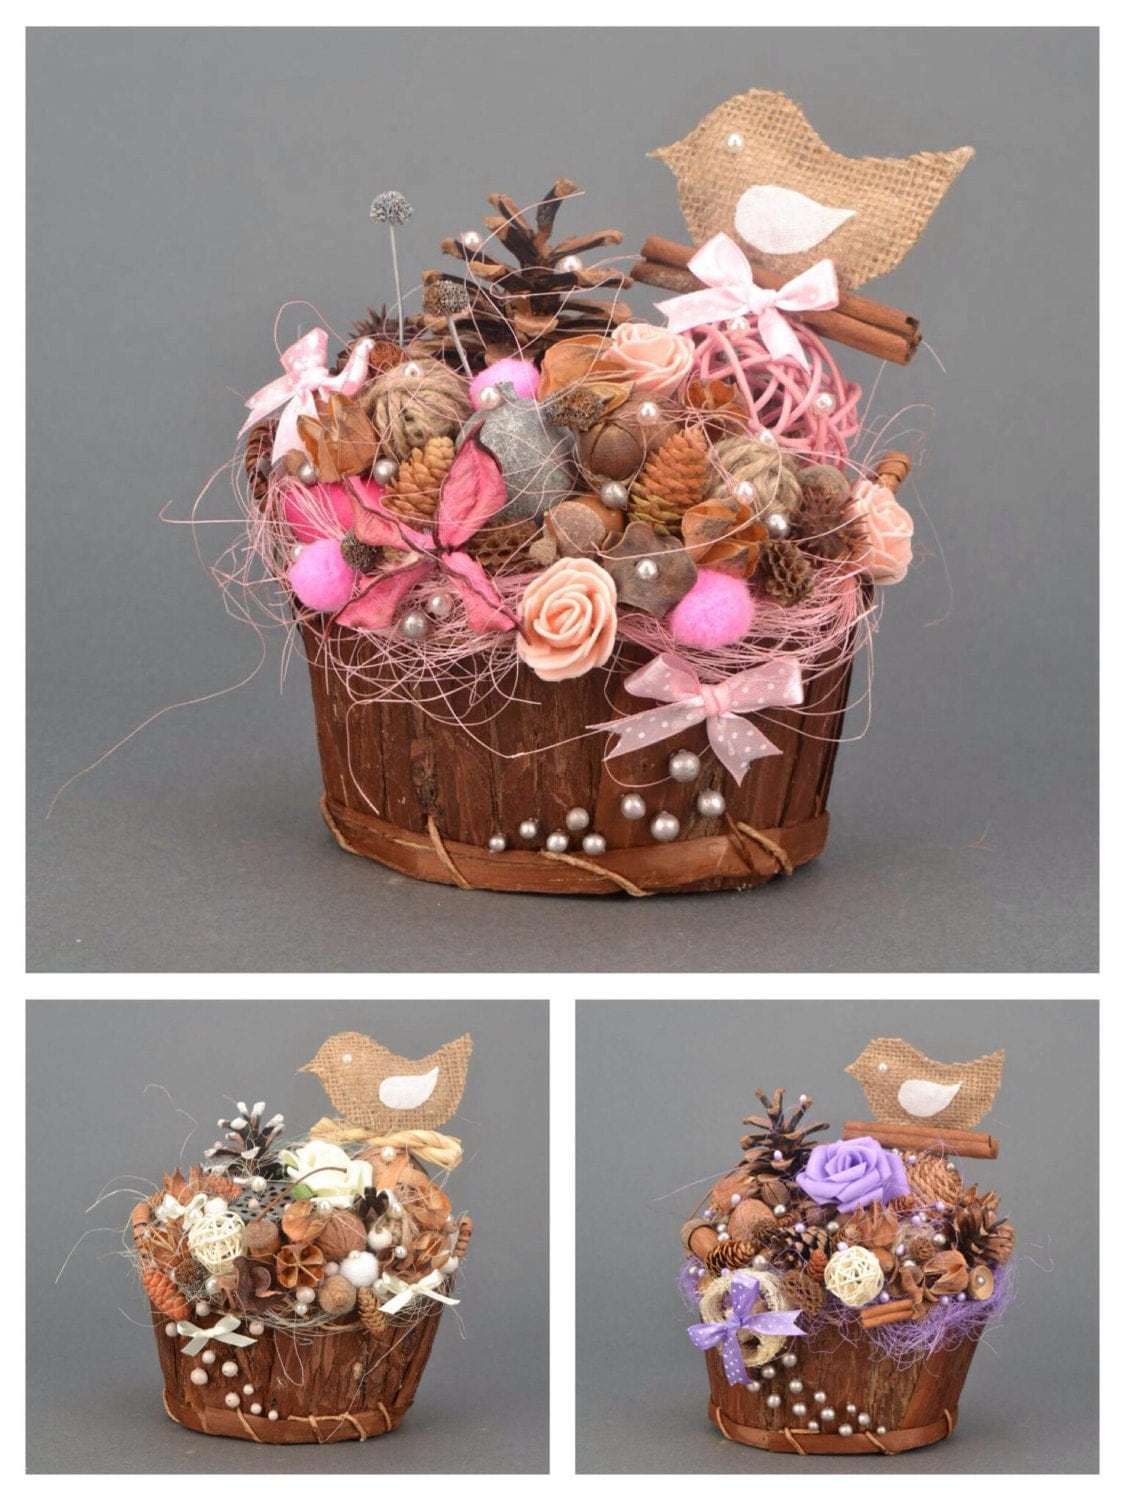 gift for women rustic room decor gift basket by kseniyarevta